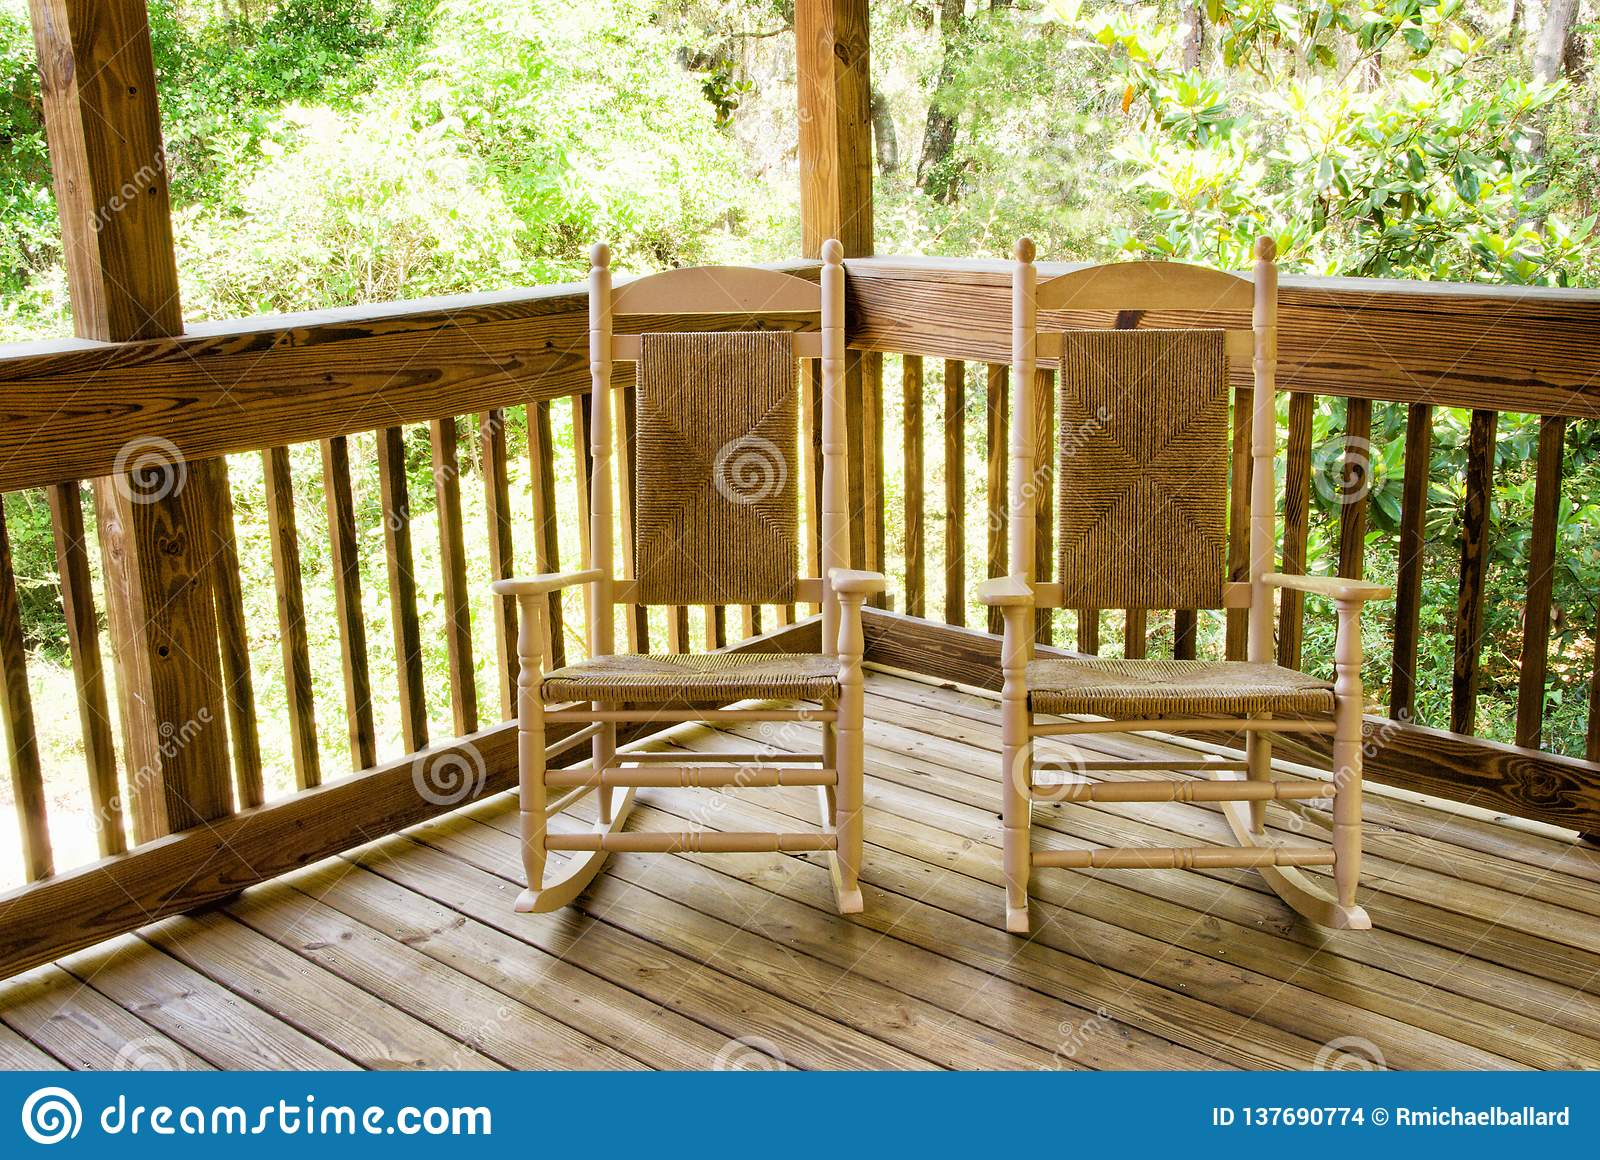 Picture of: Two Empty Wooden Rocking Chairs On A Front Porch Stock Photo Image Of Wood Chair 137690774